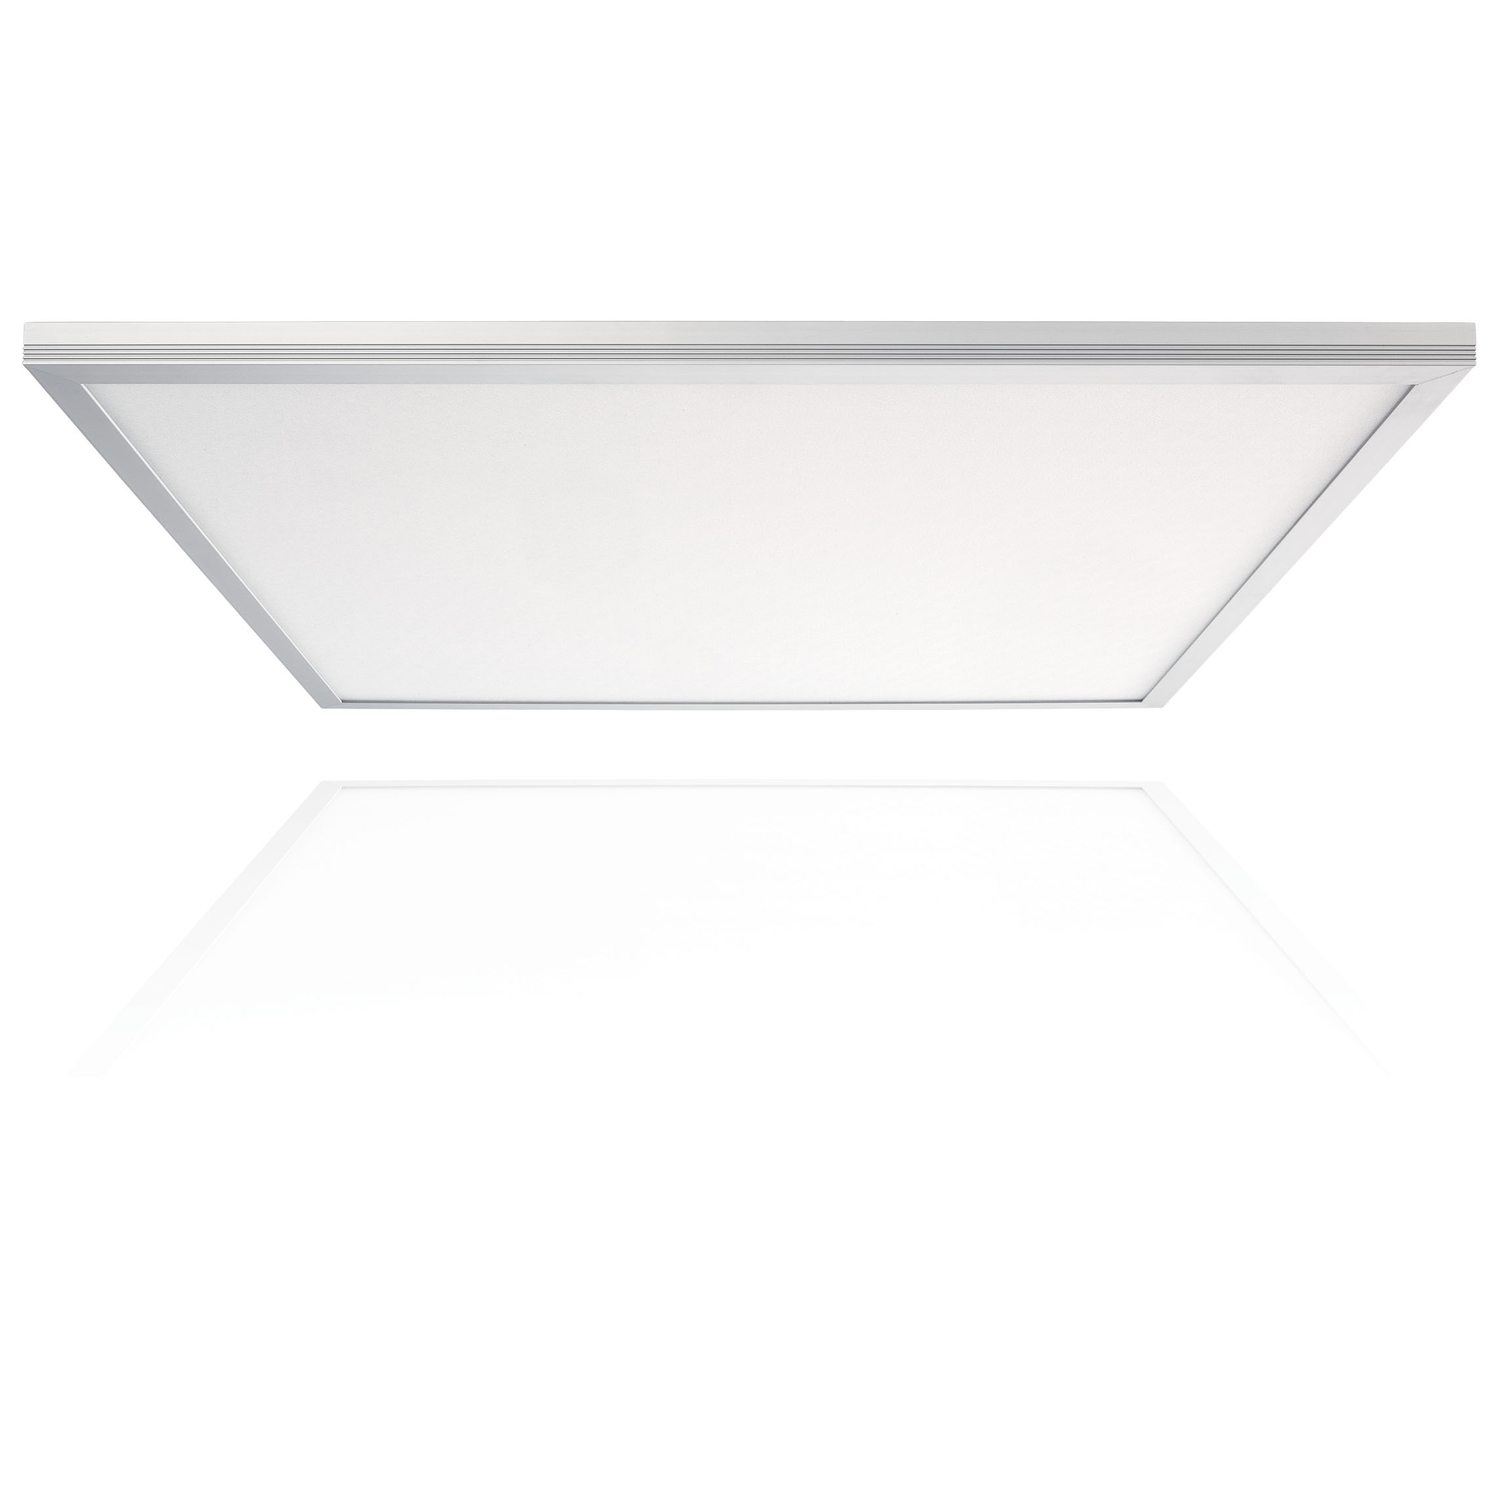 Leviton  Skytile LED  23.75 in. W x 24 in. L x 2.95 in. H LED Flat Panel Light Fixture